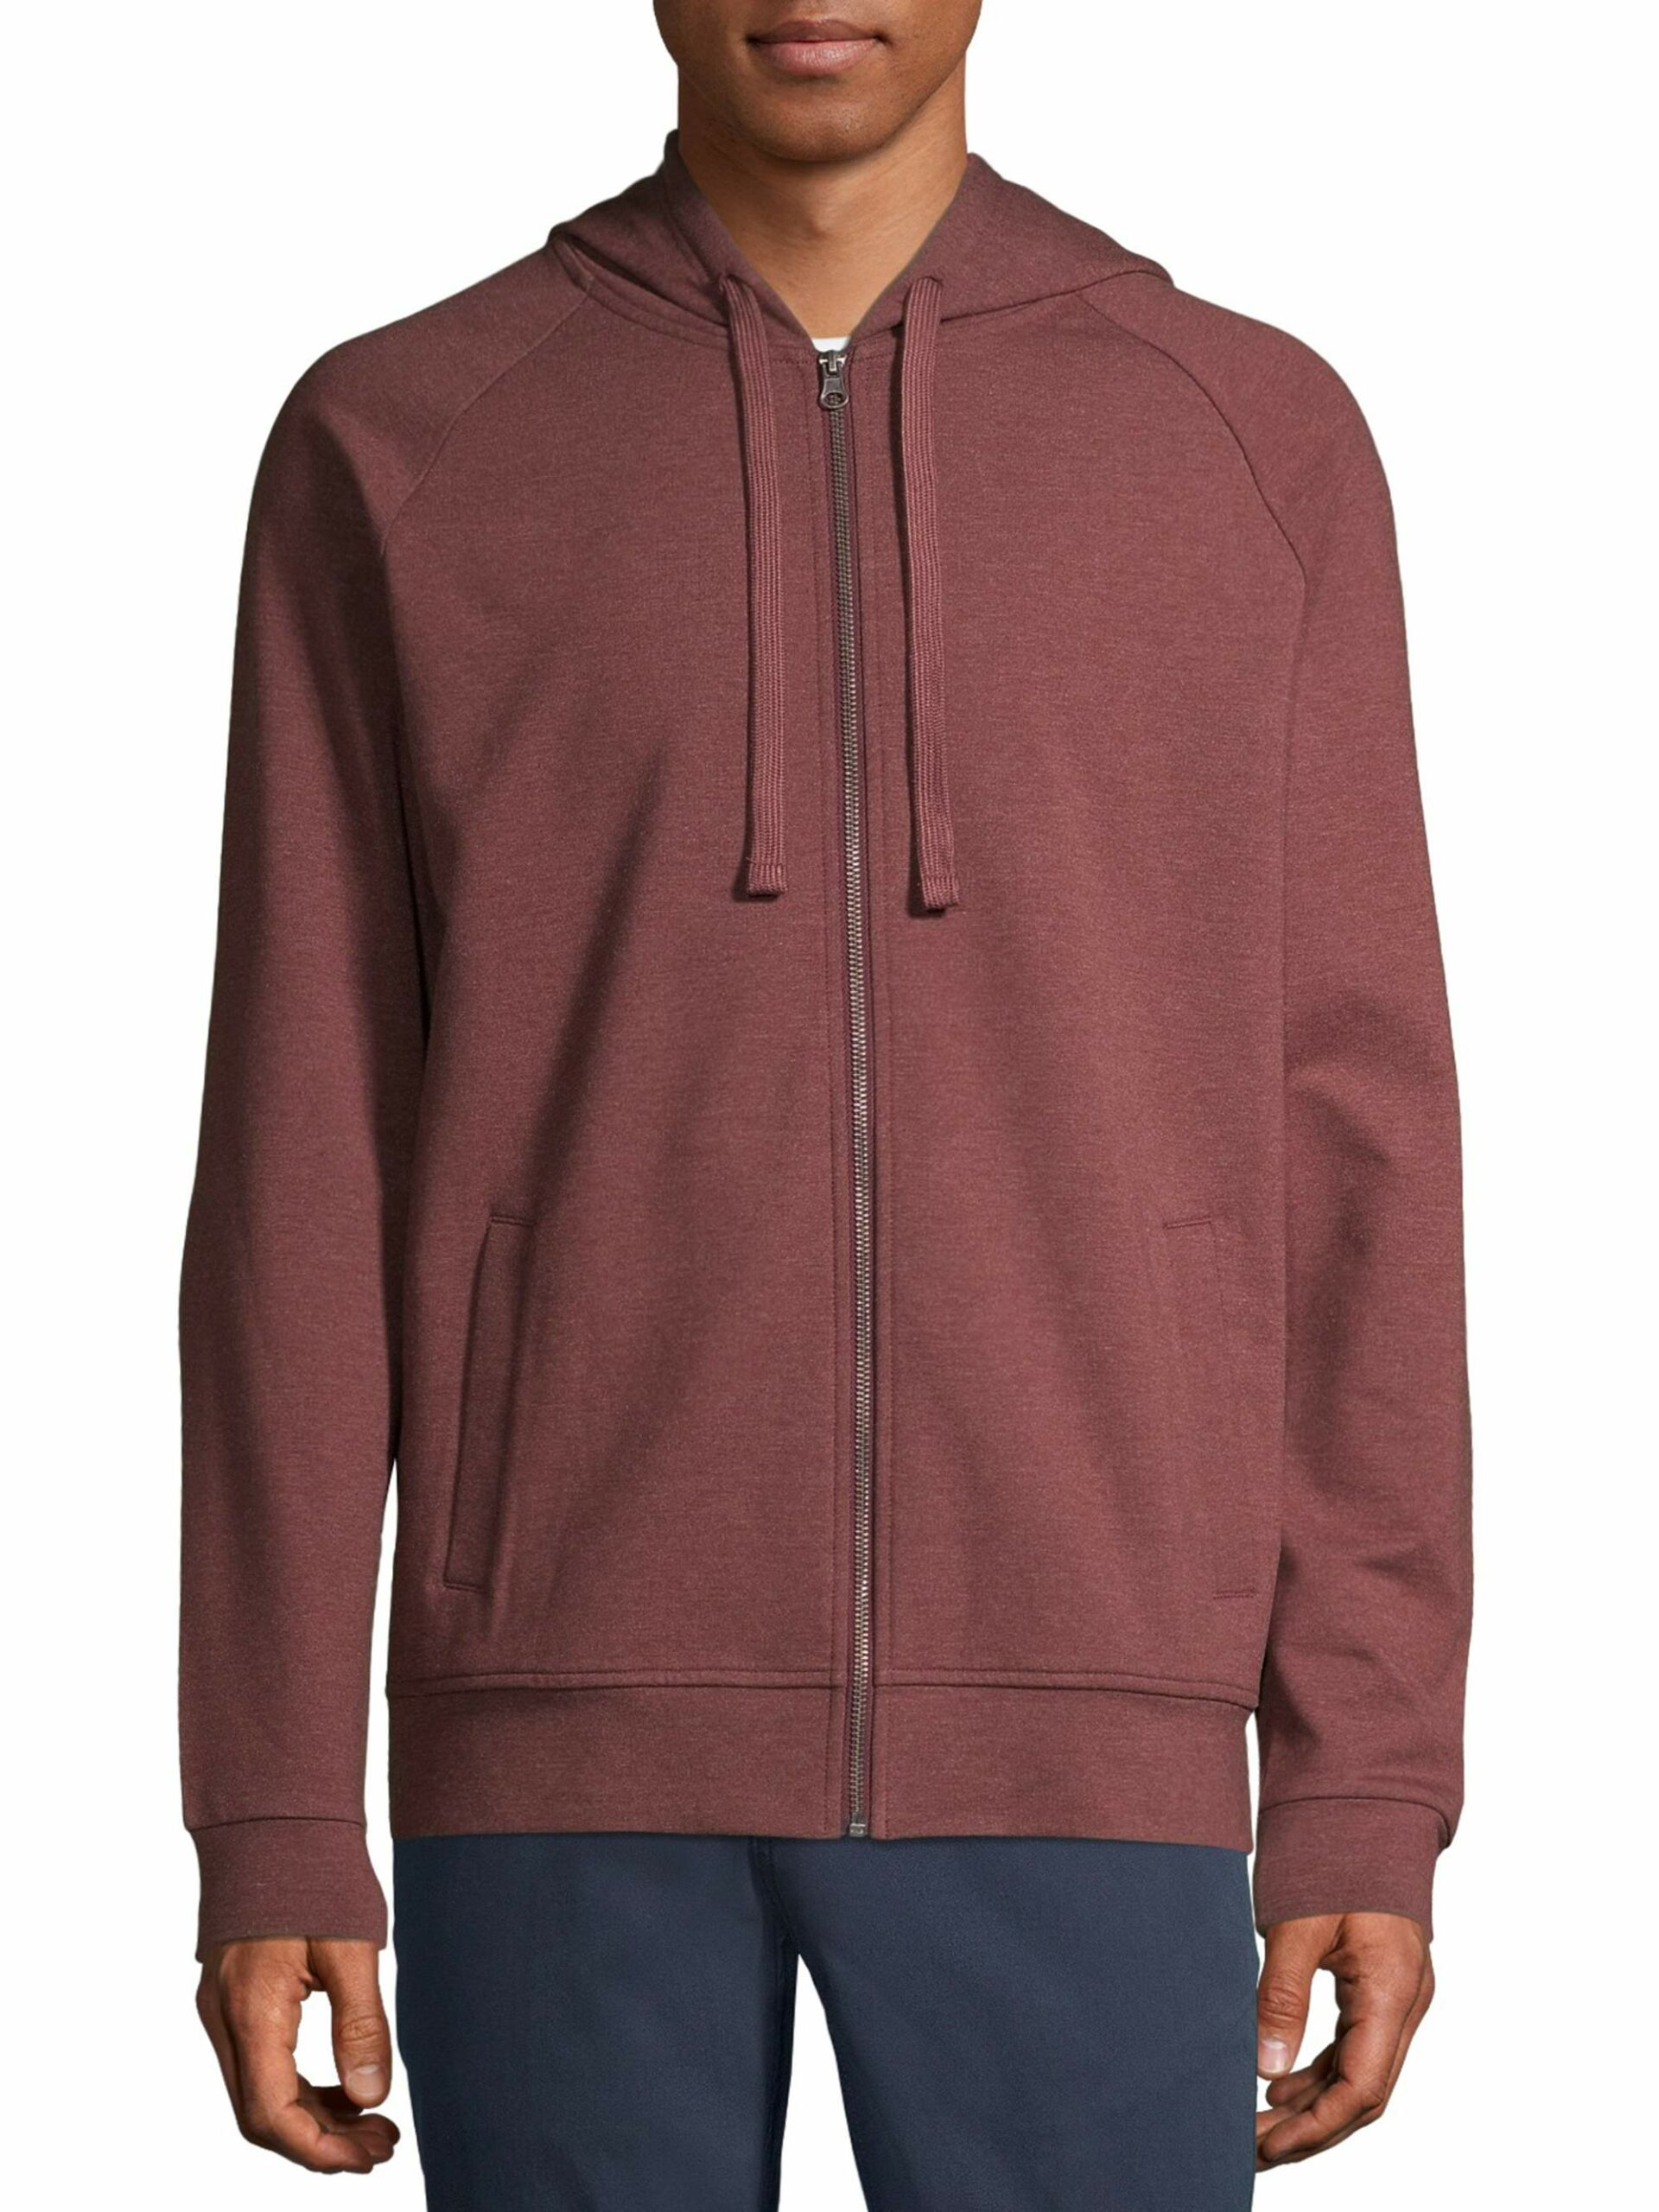 George Men's and Big Men's Fashion Full Zip Hoodie Chianti Heather, up to Size M 38-40